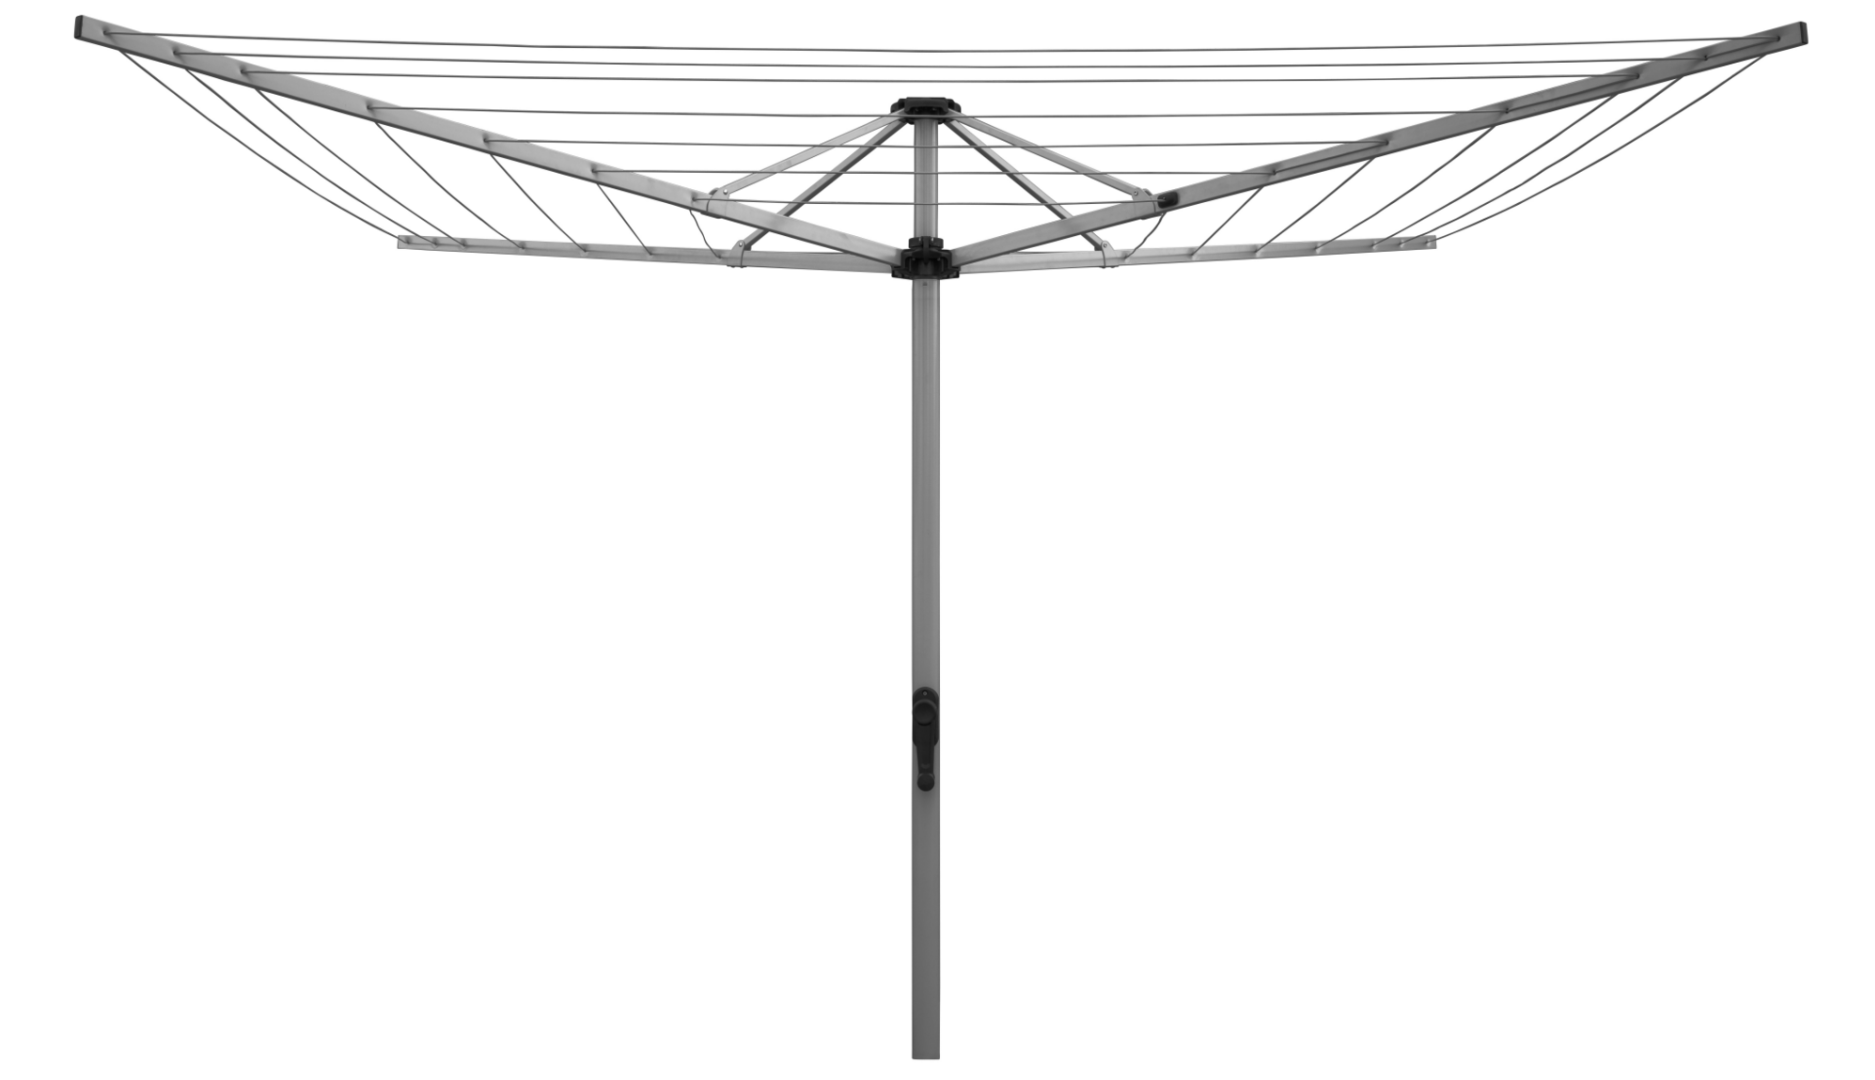 Sunbreeze Rotary Folding 51 Clothesline recommendation for Greater Newcastle NSW